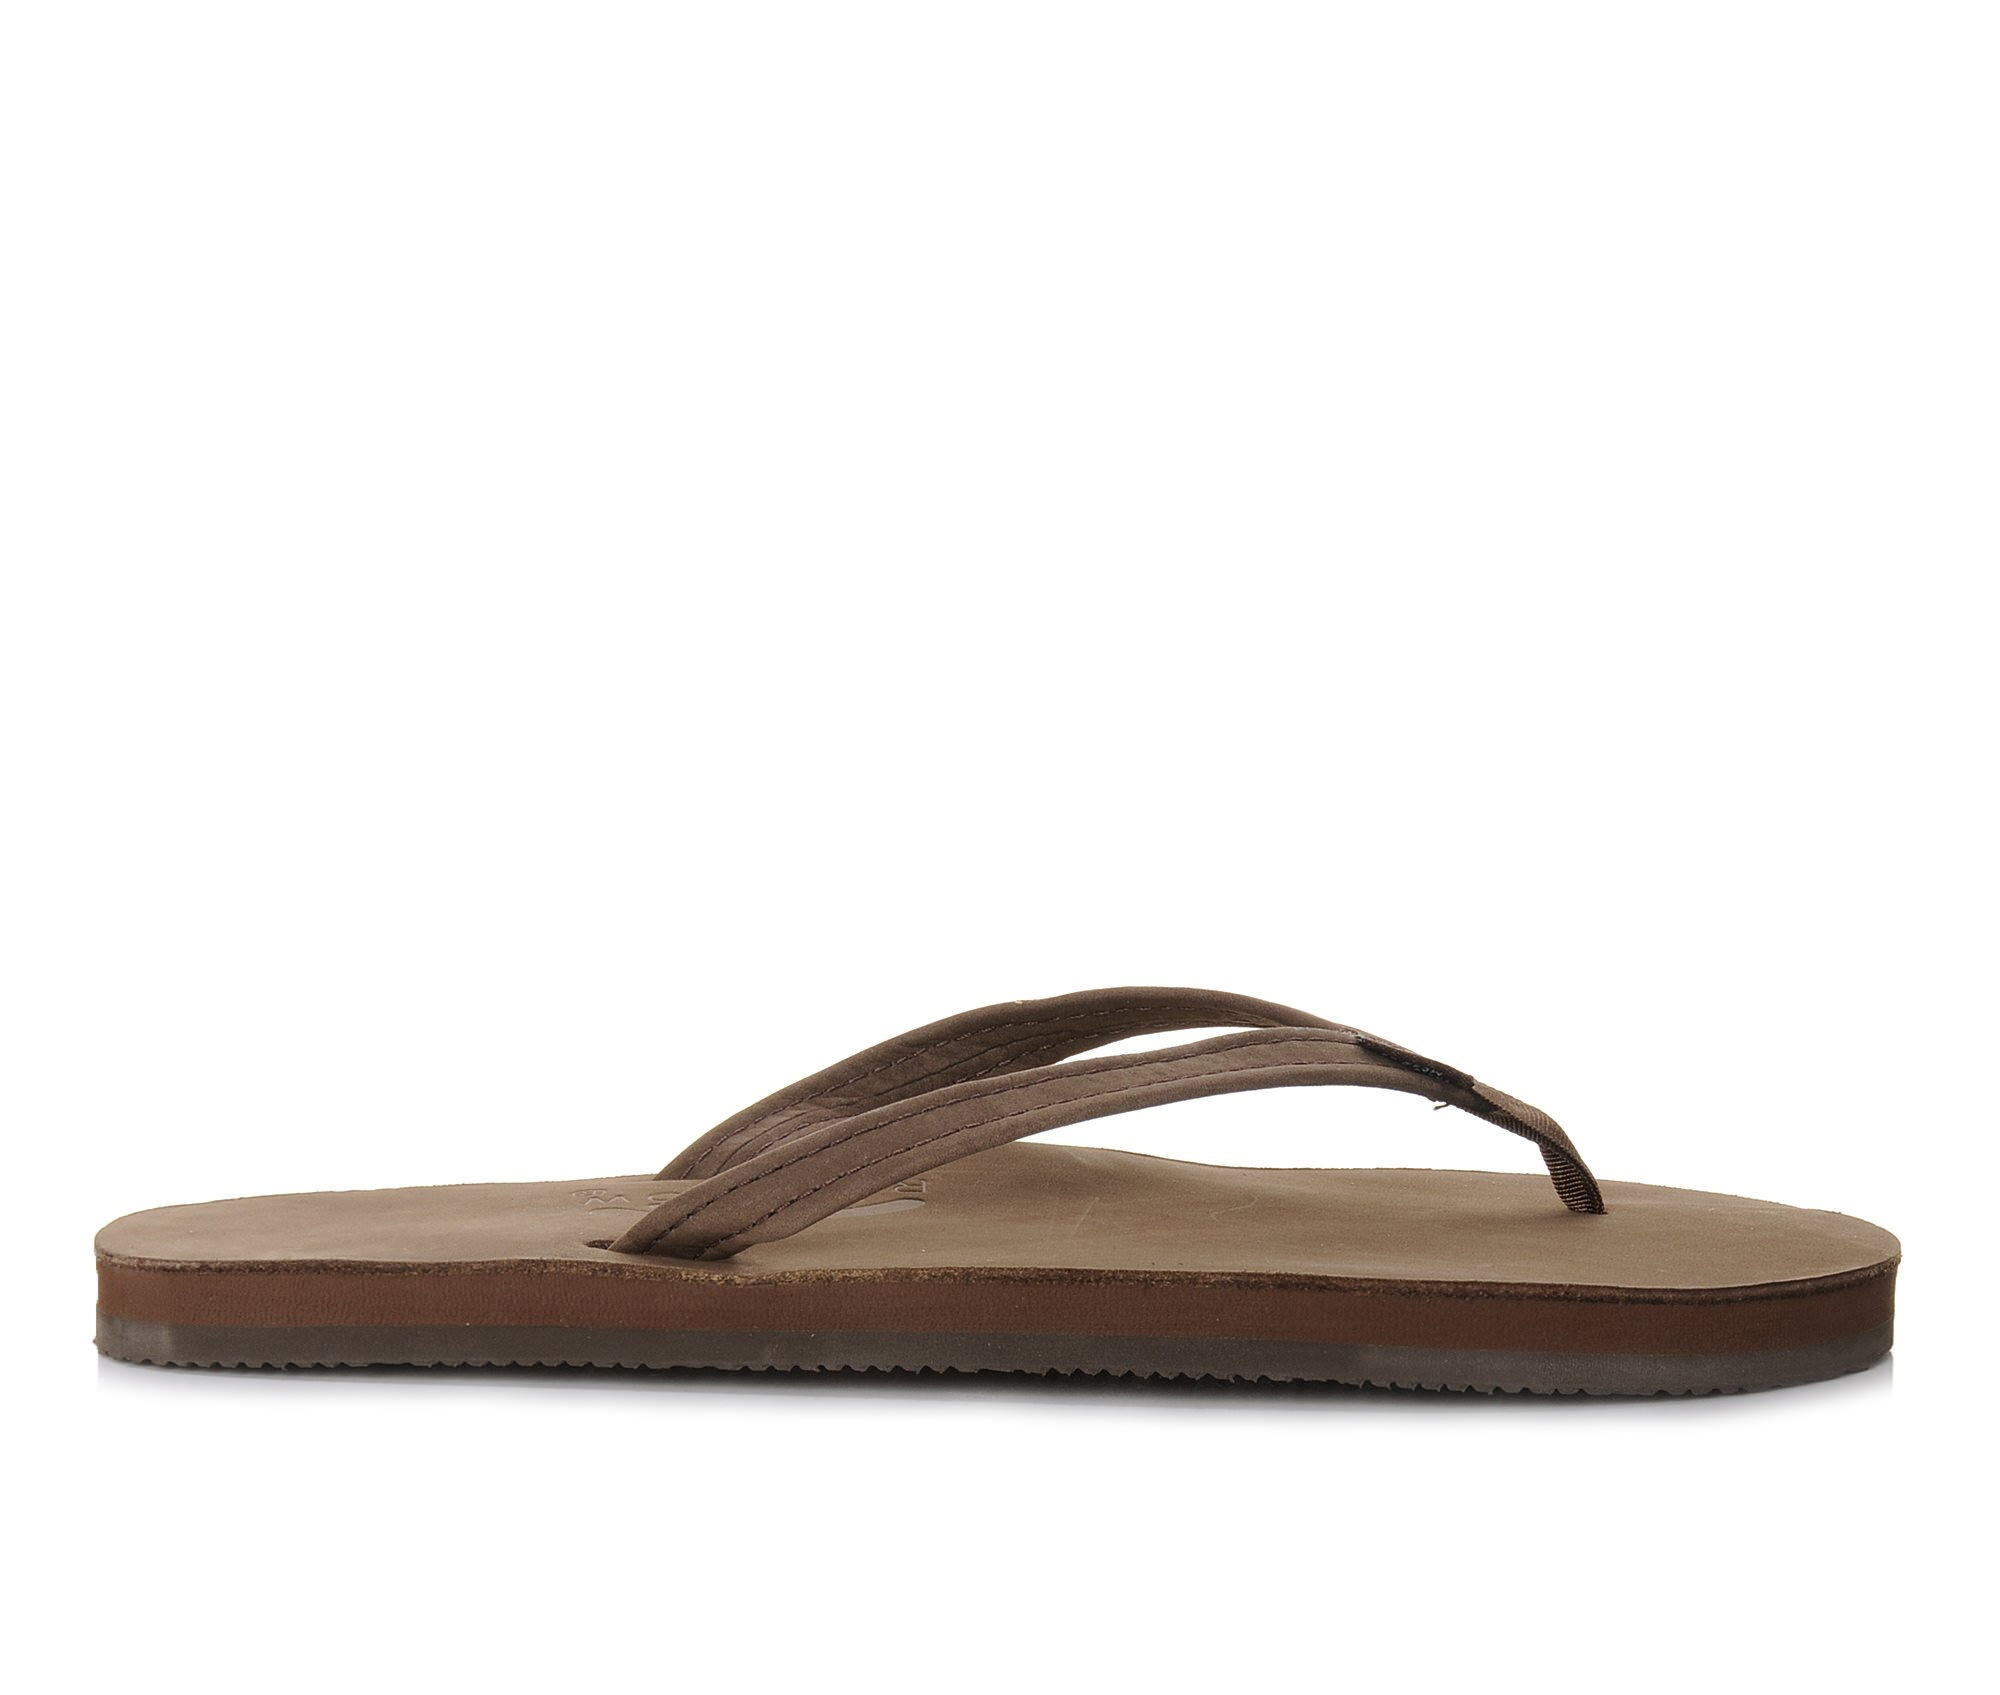 Women's Rainbow Sandals Single Layer Premier Leather -301ALTSN Flip-Flops Espresso